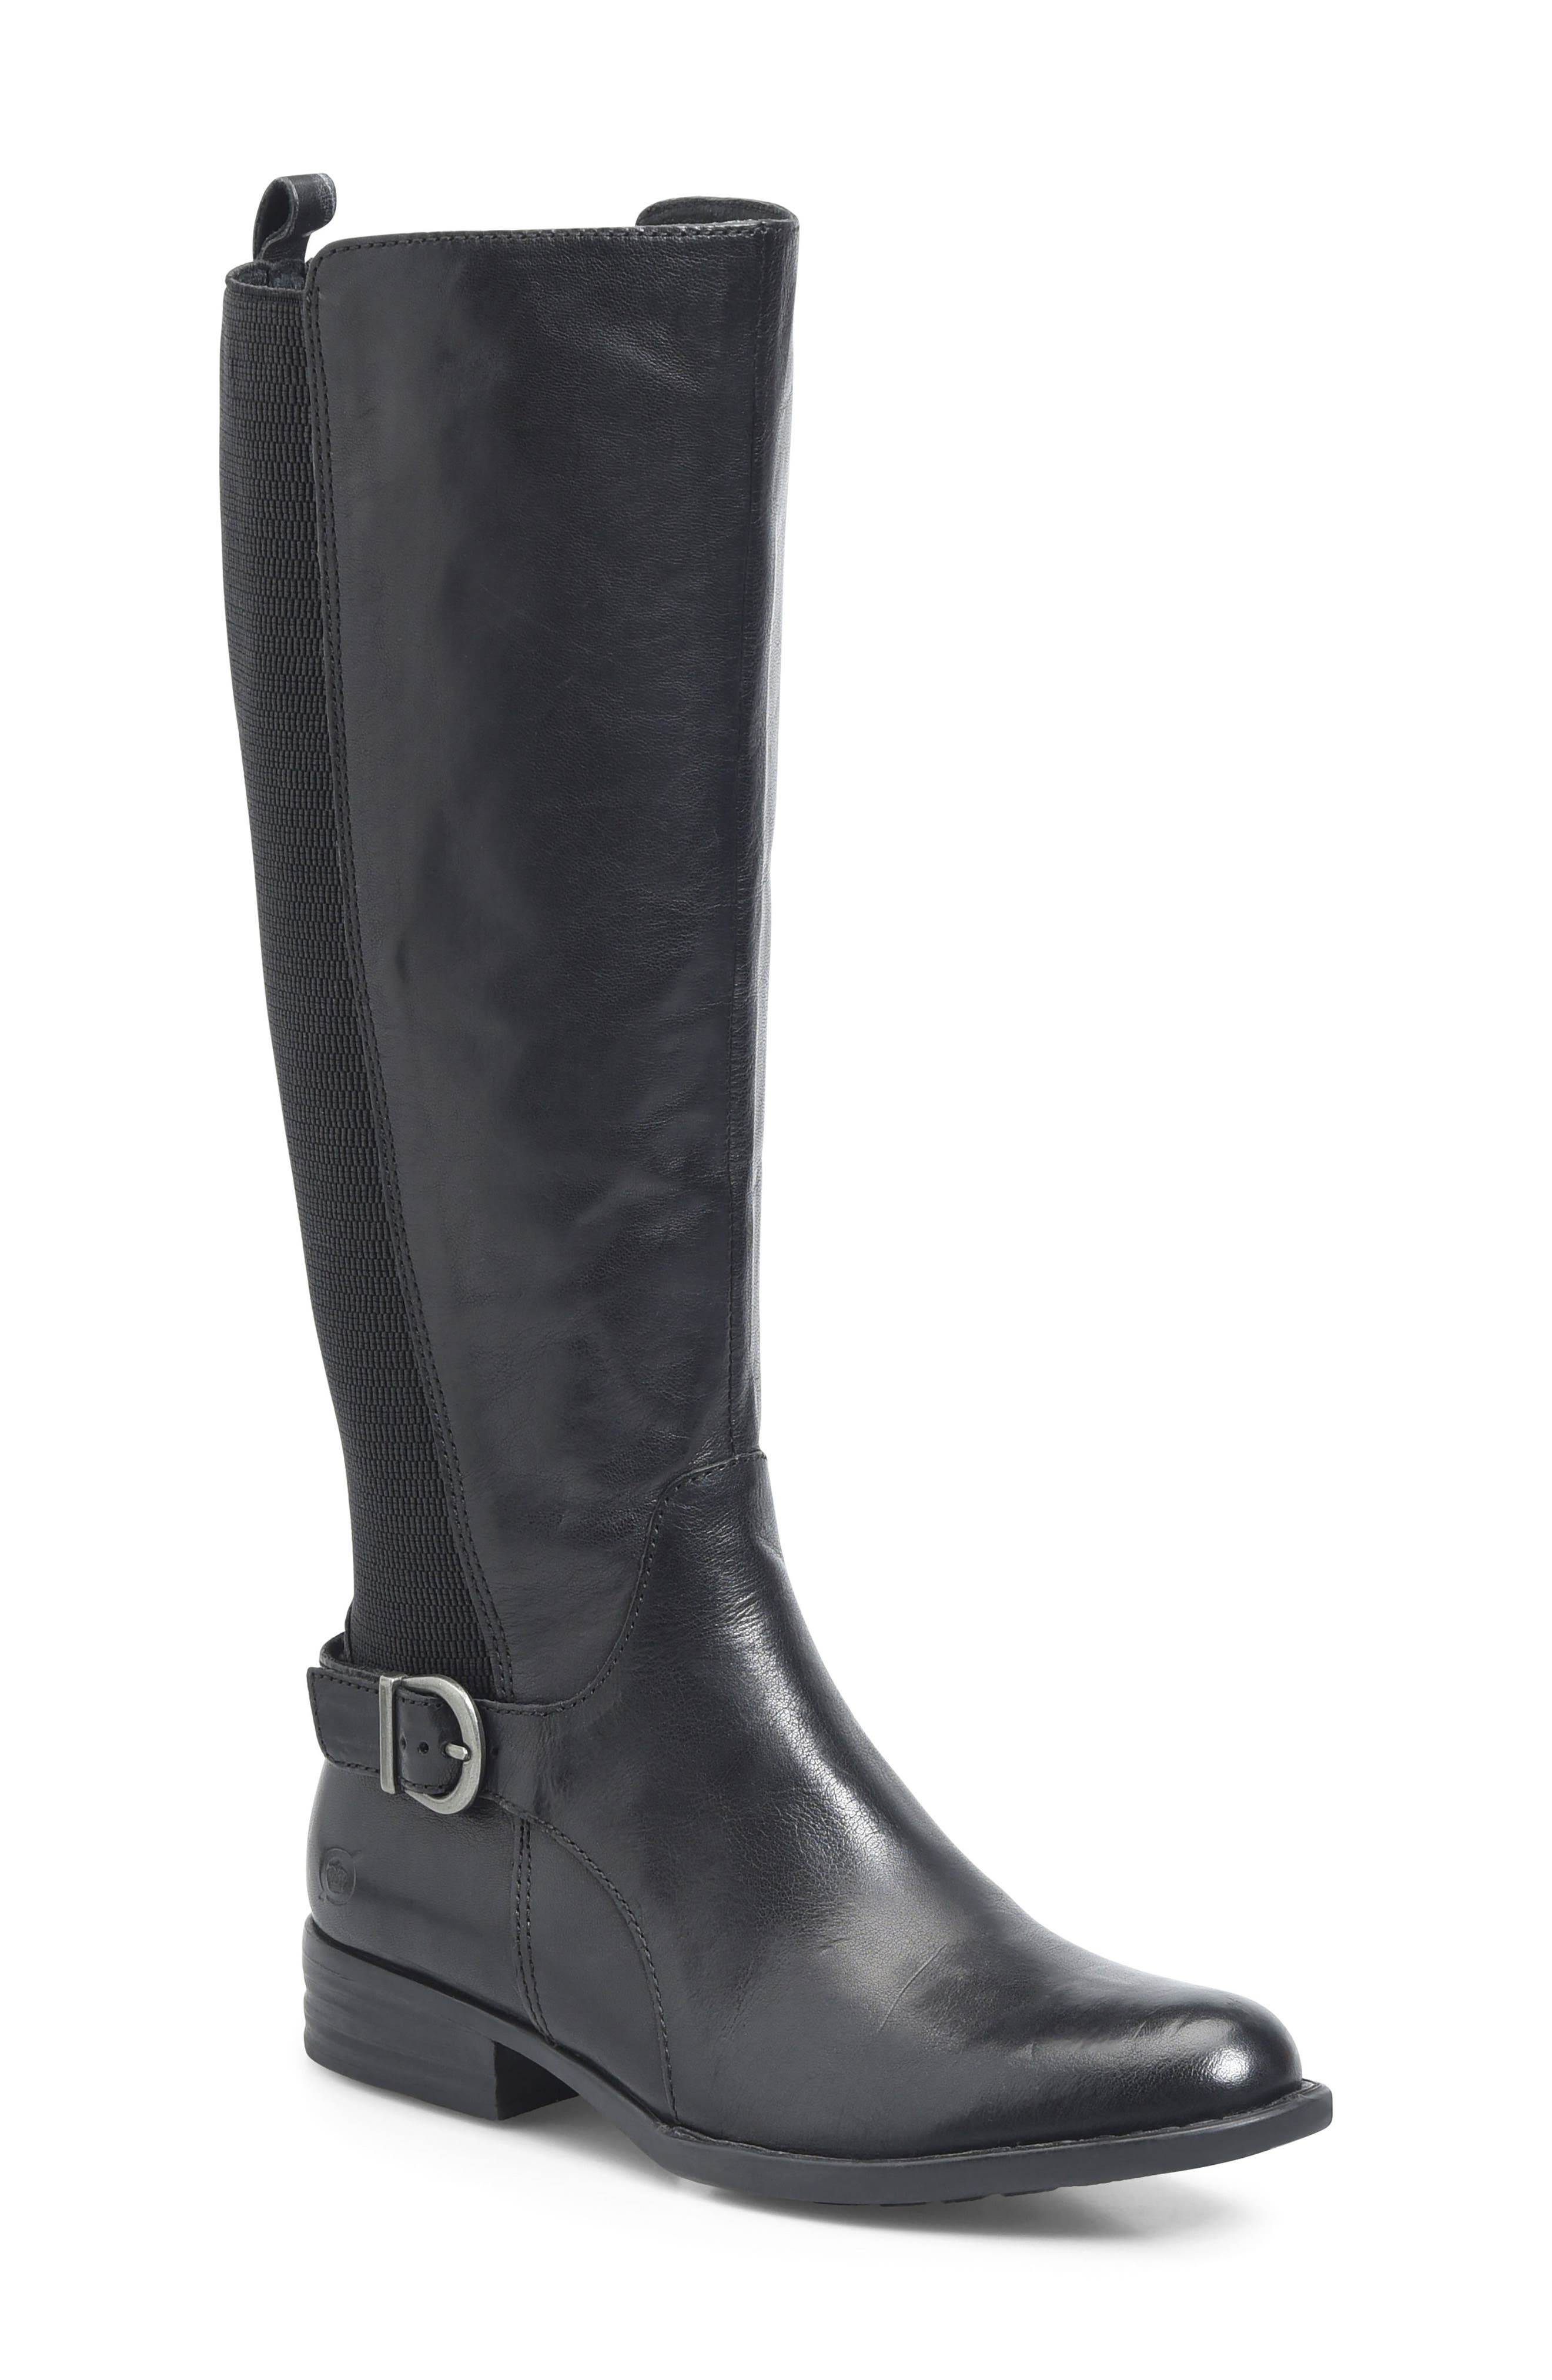 Campbell Knee High Elastic Back Boot,                         Main,                         color, Black Leather